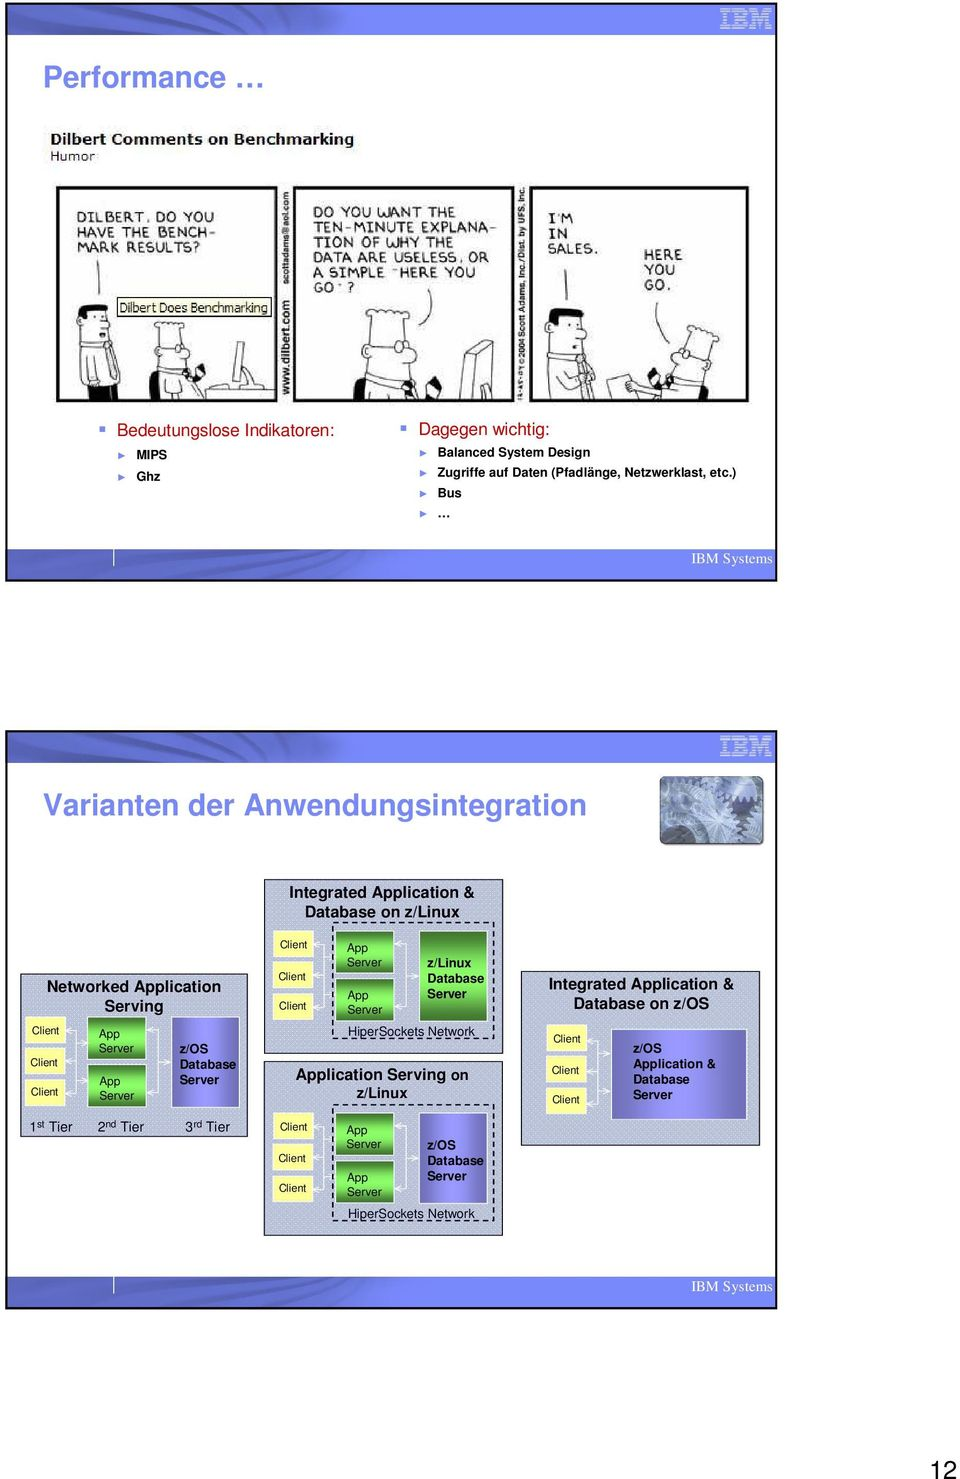 ) Bus Varianten der Anwendungsintegration Integrated Application & Database on z/linux Networked Application Serving App App